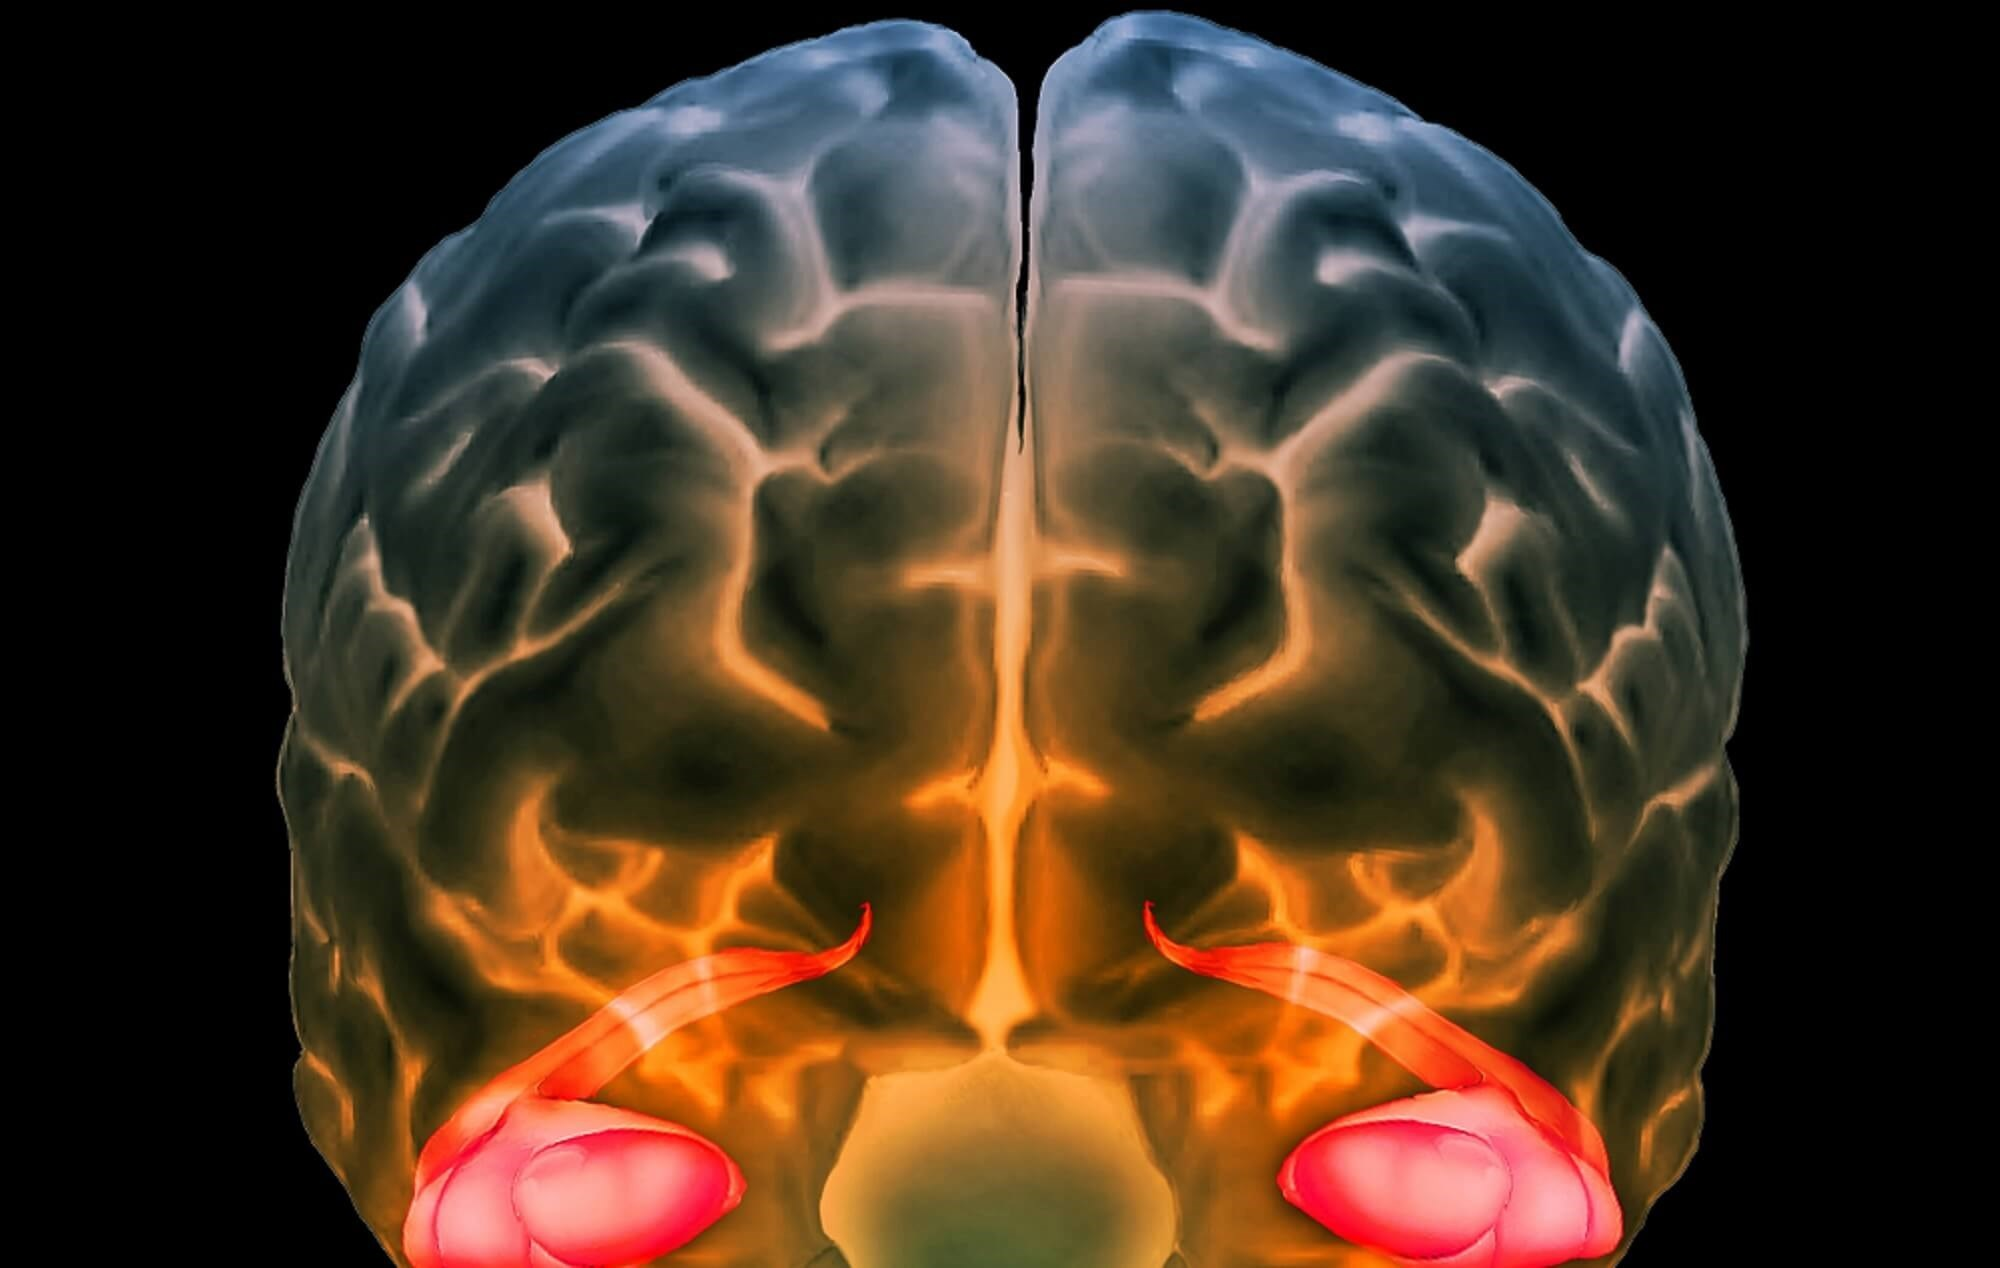 Inflammation Associated With Gray Matter, Hippocampal Volume Reduction in Older Adults With Bipolar Disorder